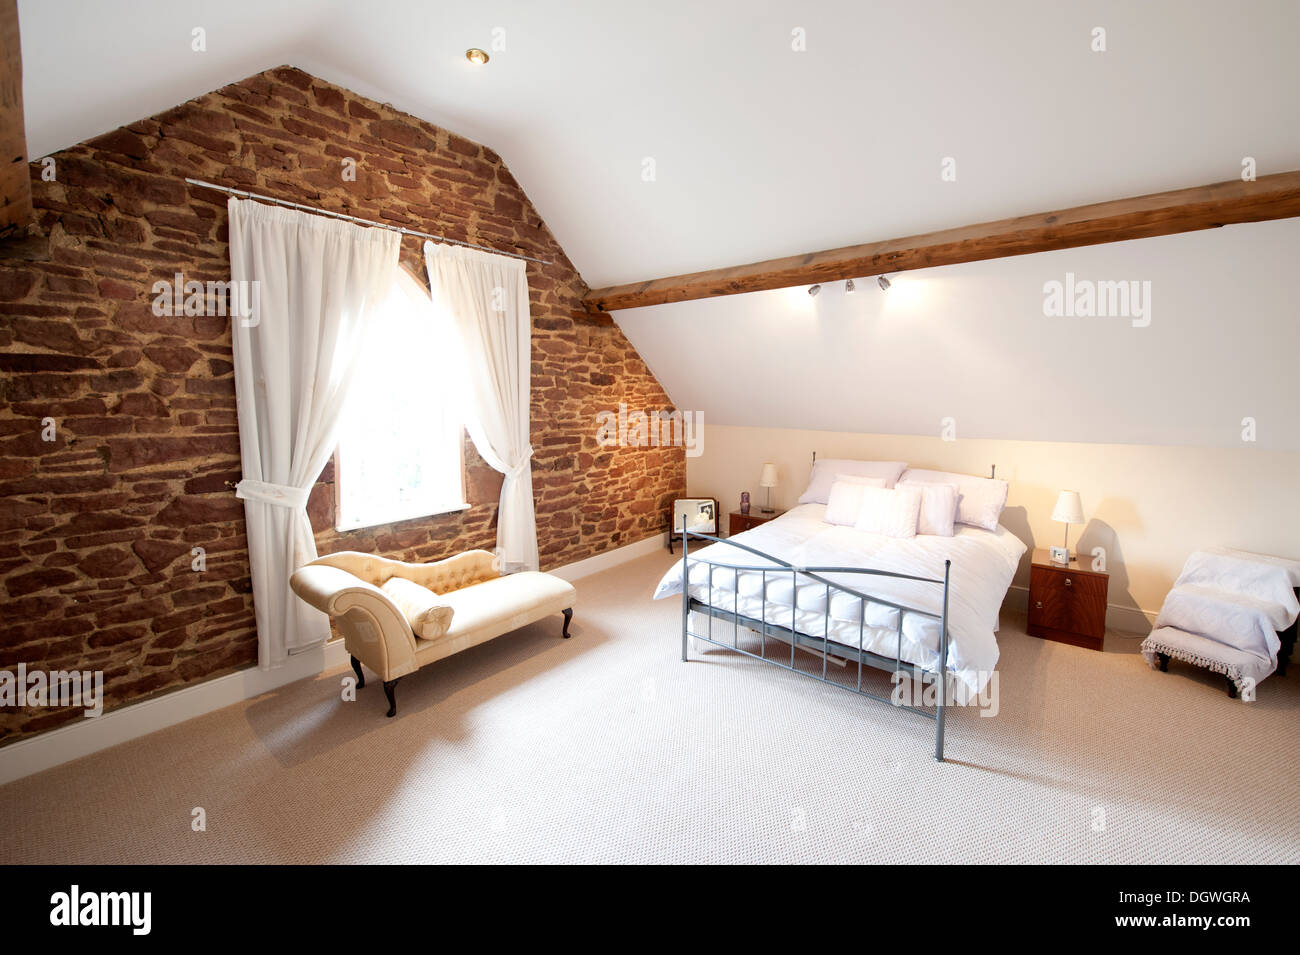 Attic Bedroom Attic Bedroom Stock Photos Attic Bedroom Stock Images Alamy